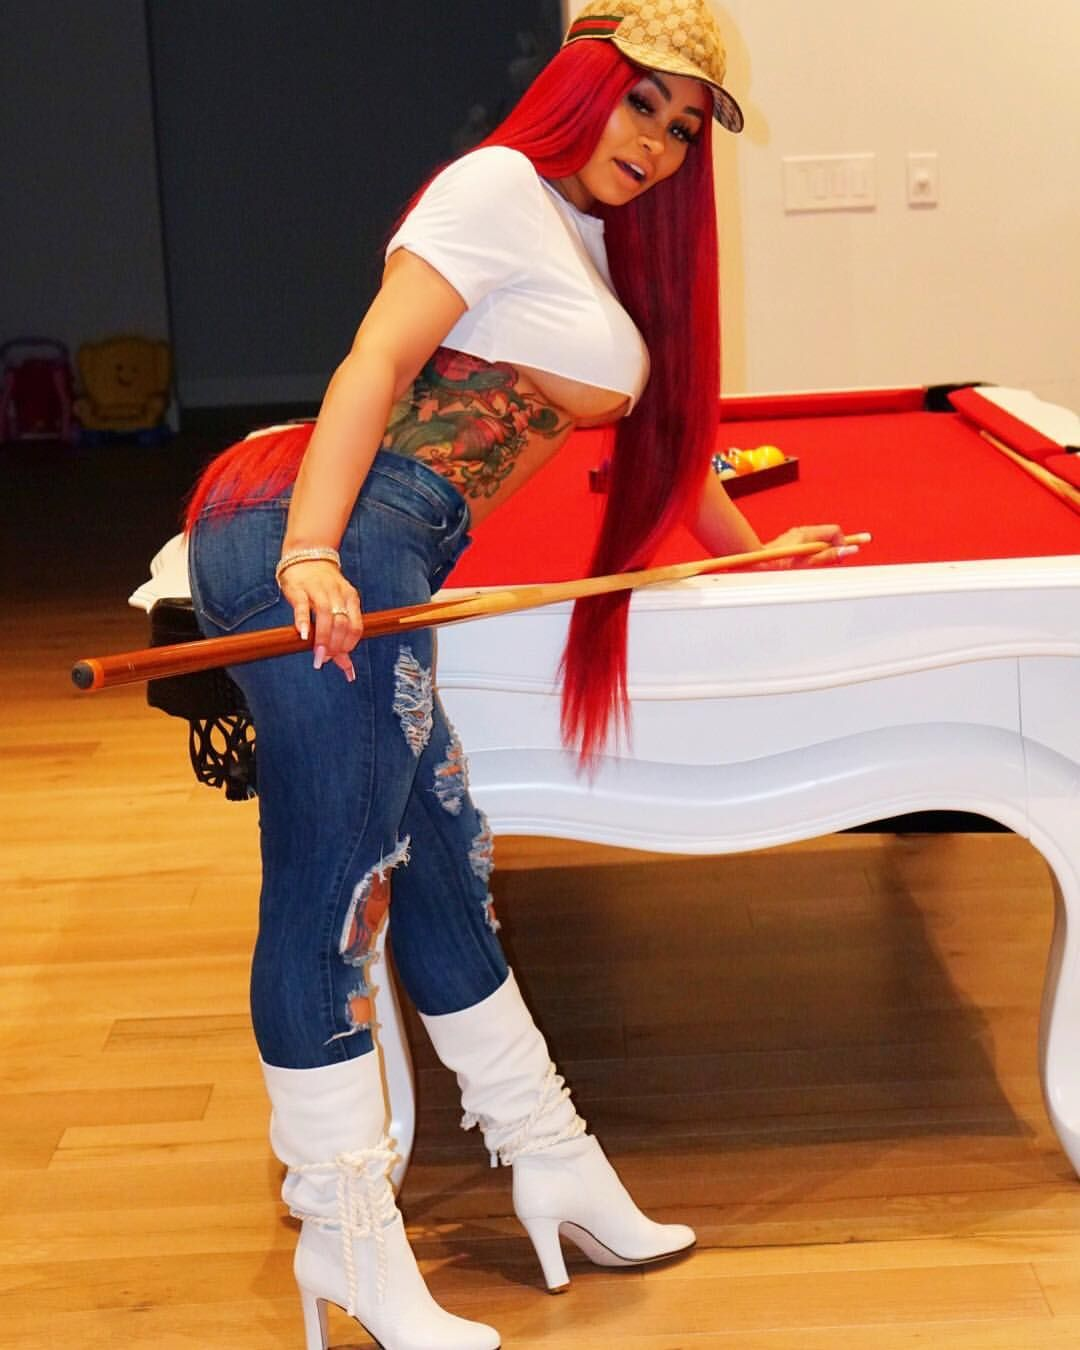 b785e3cdf4dbf Pin by DONNA DEELISH ™ on Blac Chyna (OG Doll) in 2019 | Blac chyna ...